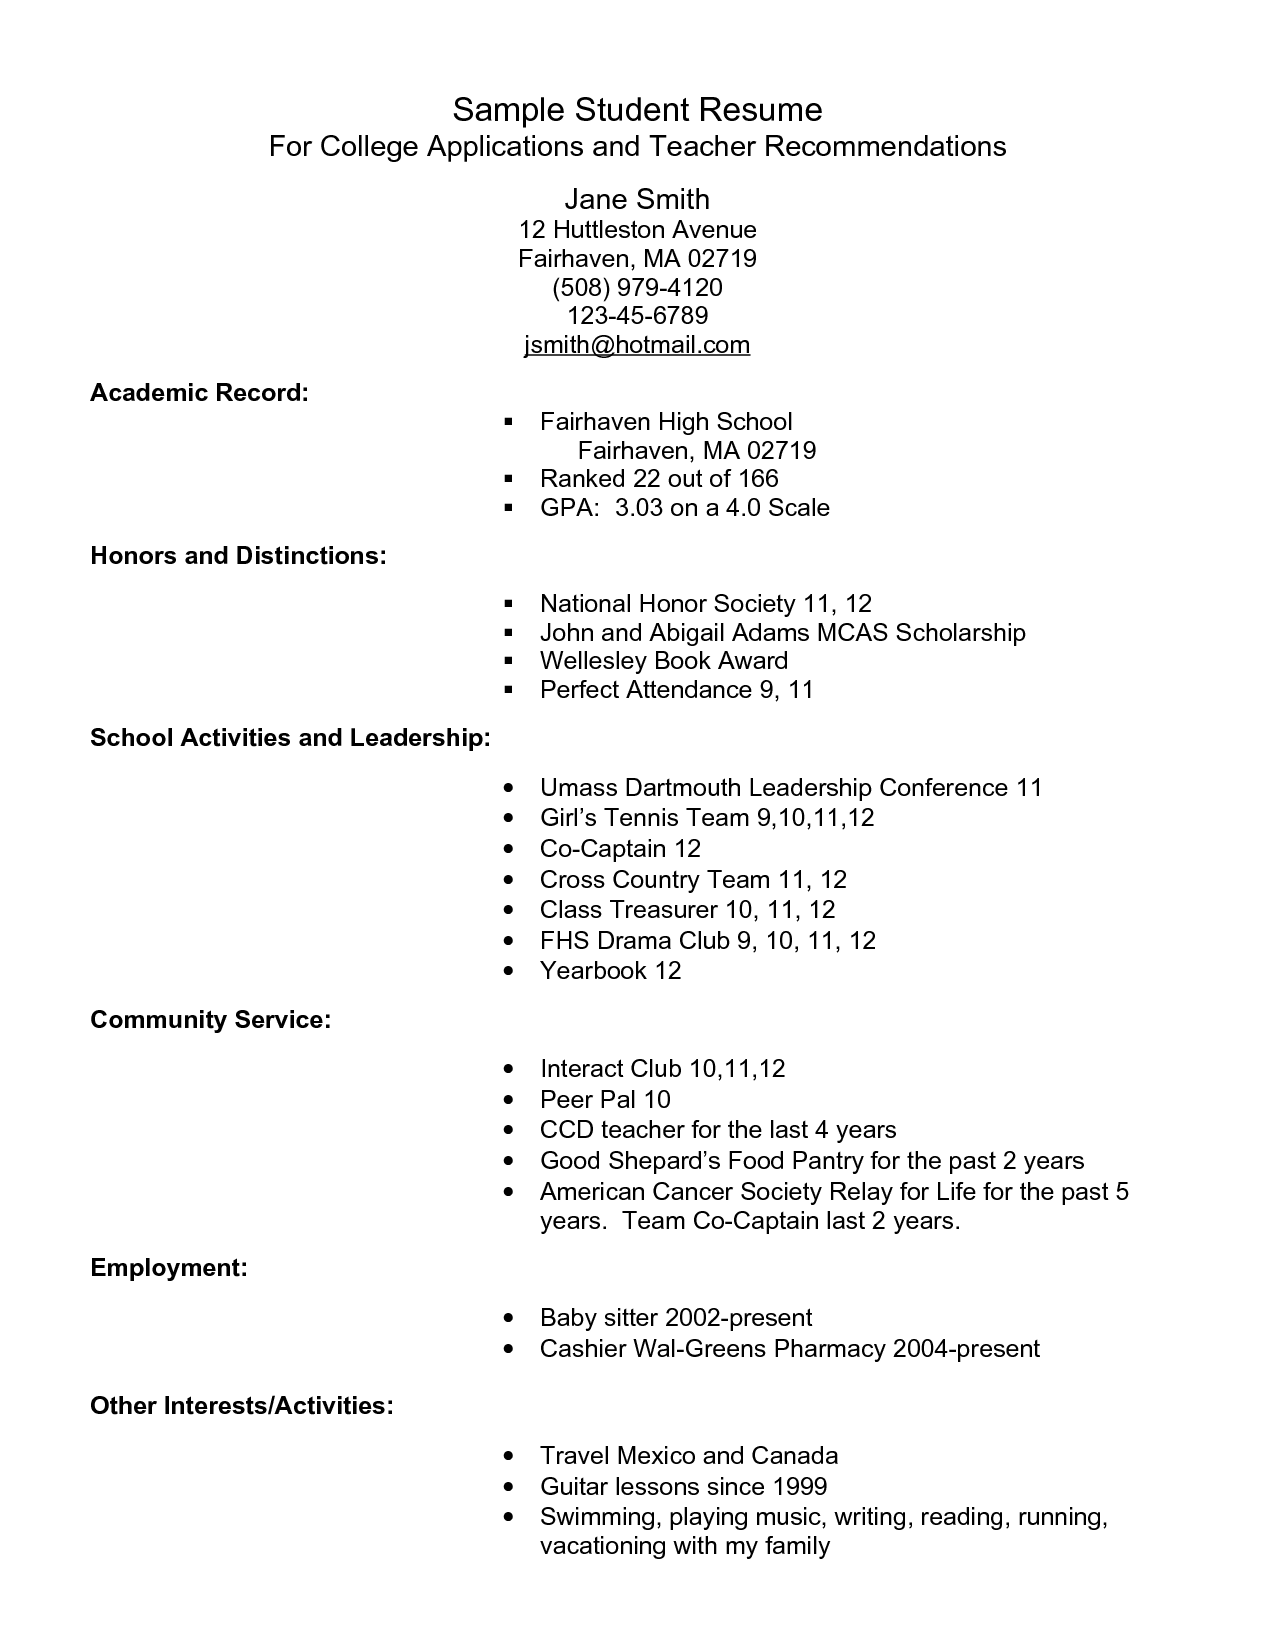 Nice Example Resume For High School Students For College Applications Sample  Student Resume   PDF By Smapdi59 For High School Resume For College Application